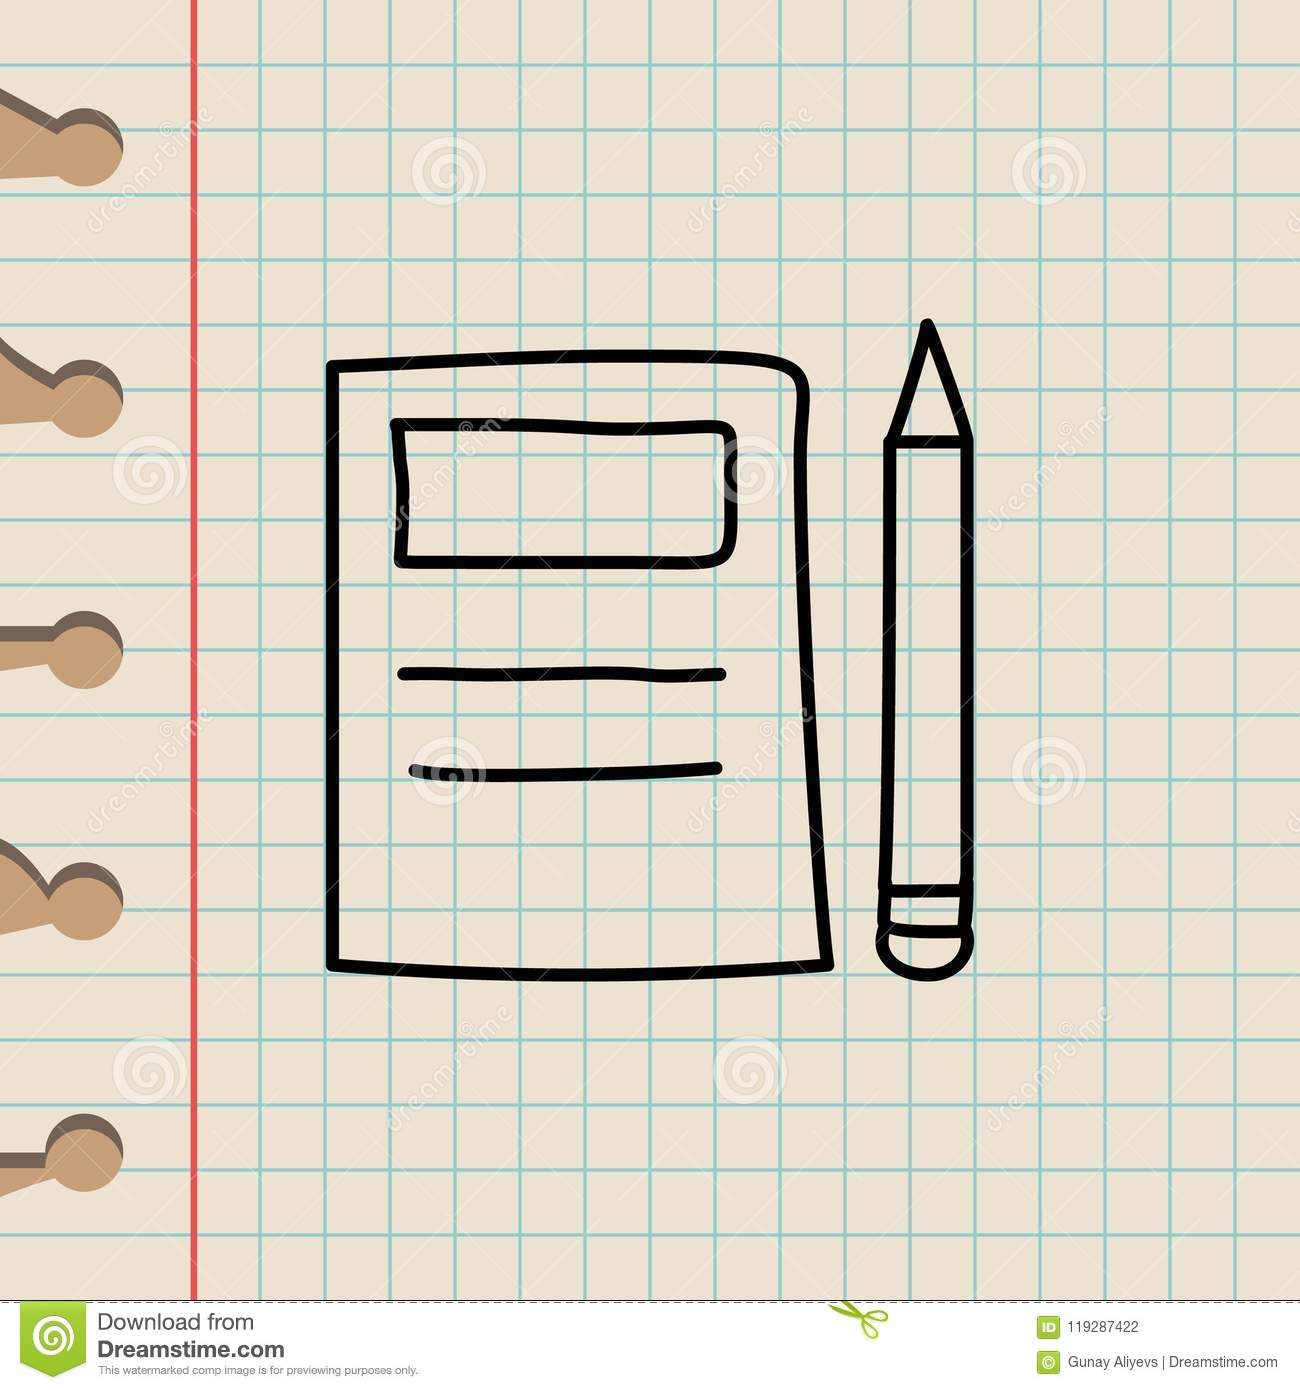 Notebook and pencil sketch icon element of education icon for mobile concept and web apps outline notebook and pencil sketch icon can be used for web and